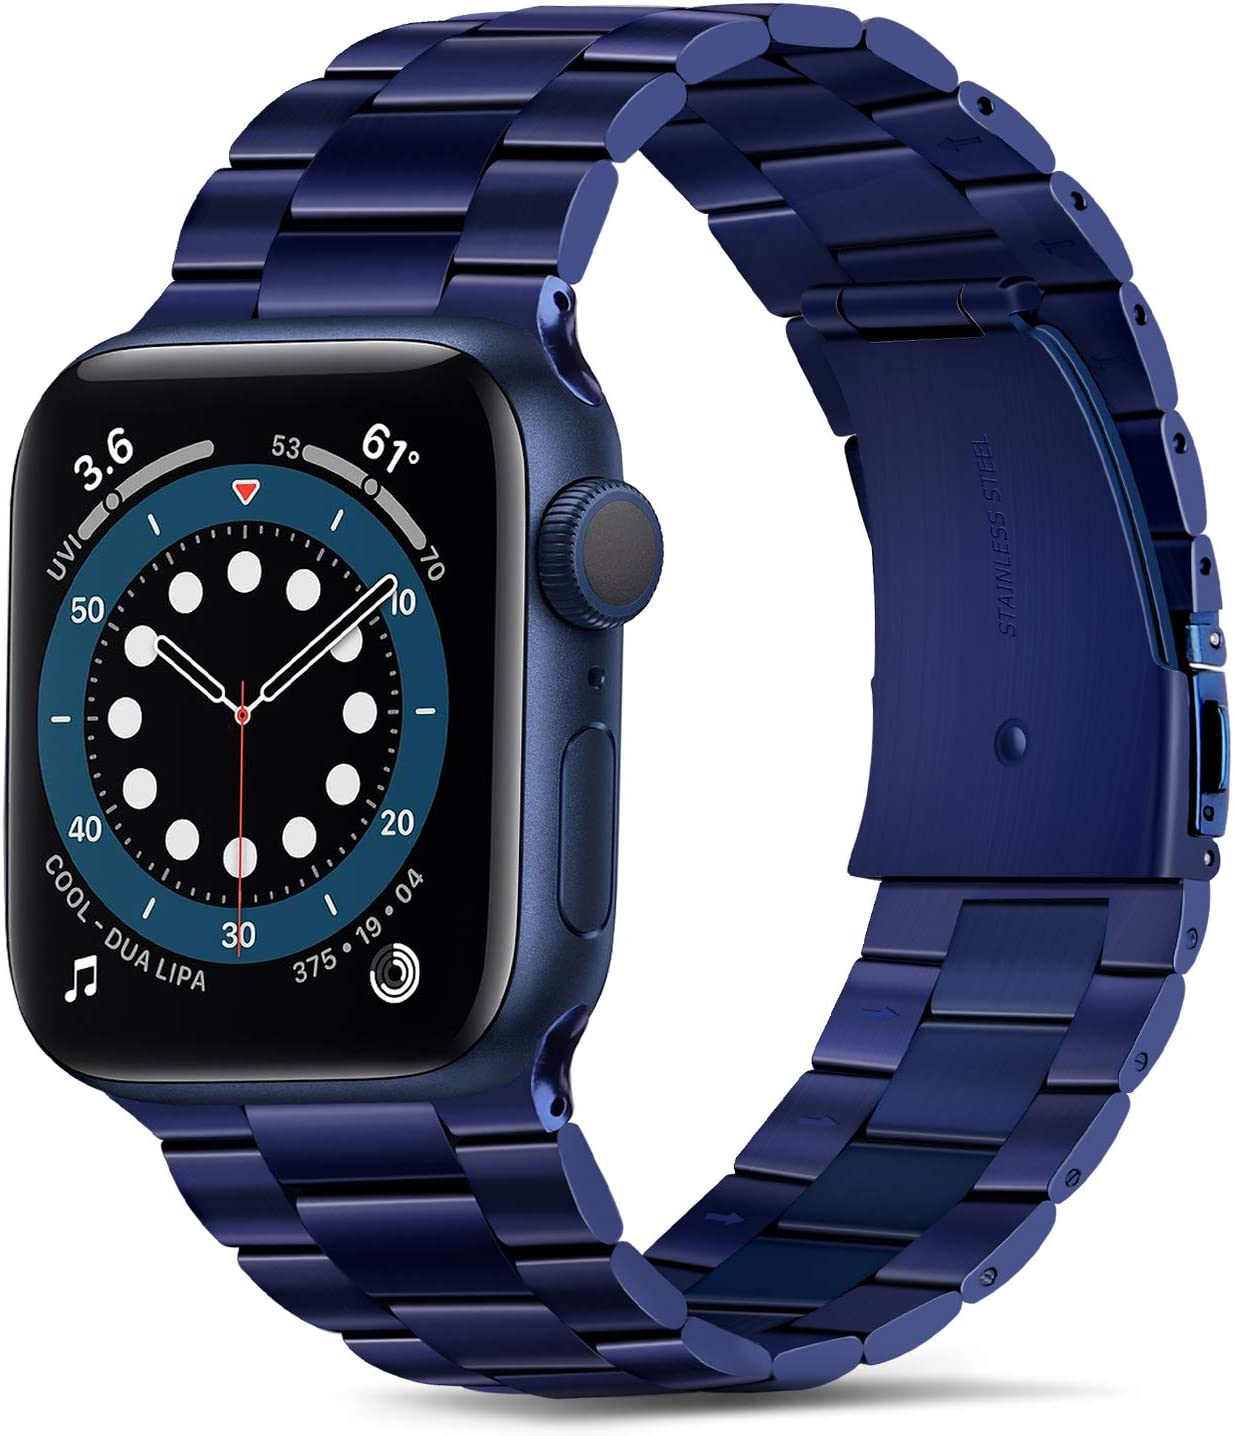 Tasikar Band Compatible with Apple Watch Band 44mm 42mm Premium Stainless Steel Metal Replacement Strap Compatible with Apple Watch Series 6 5 4 3 2 1, SE (Blue)